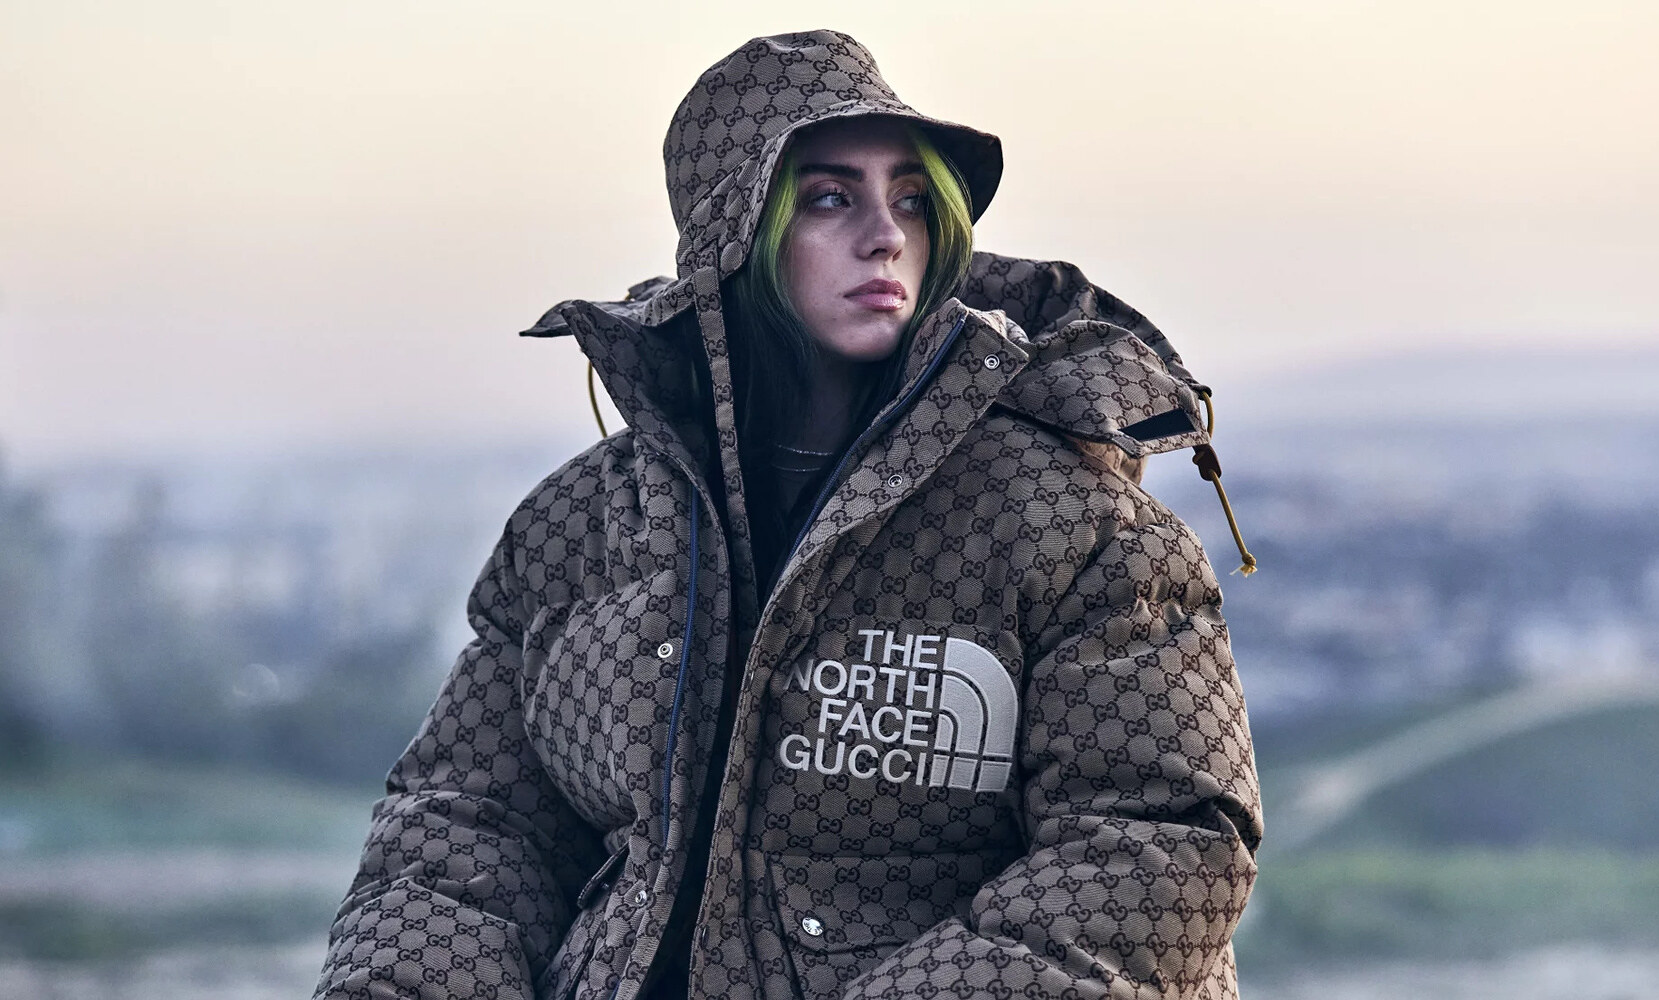 Bilie Eilish Gucci x The North Face